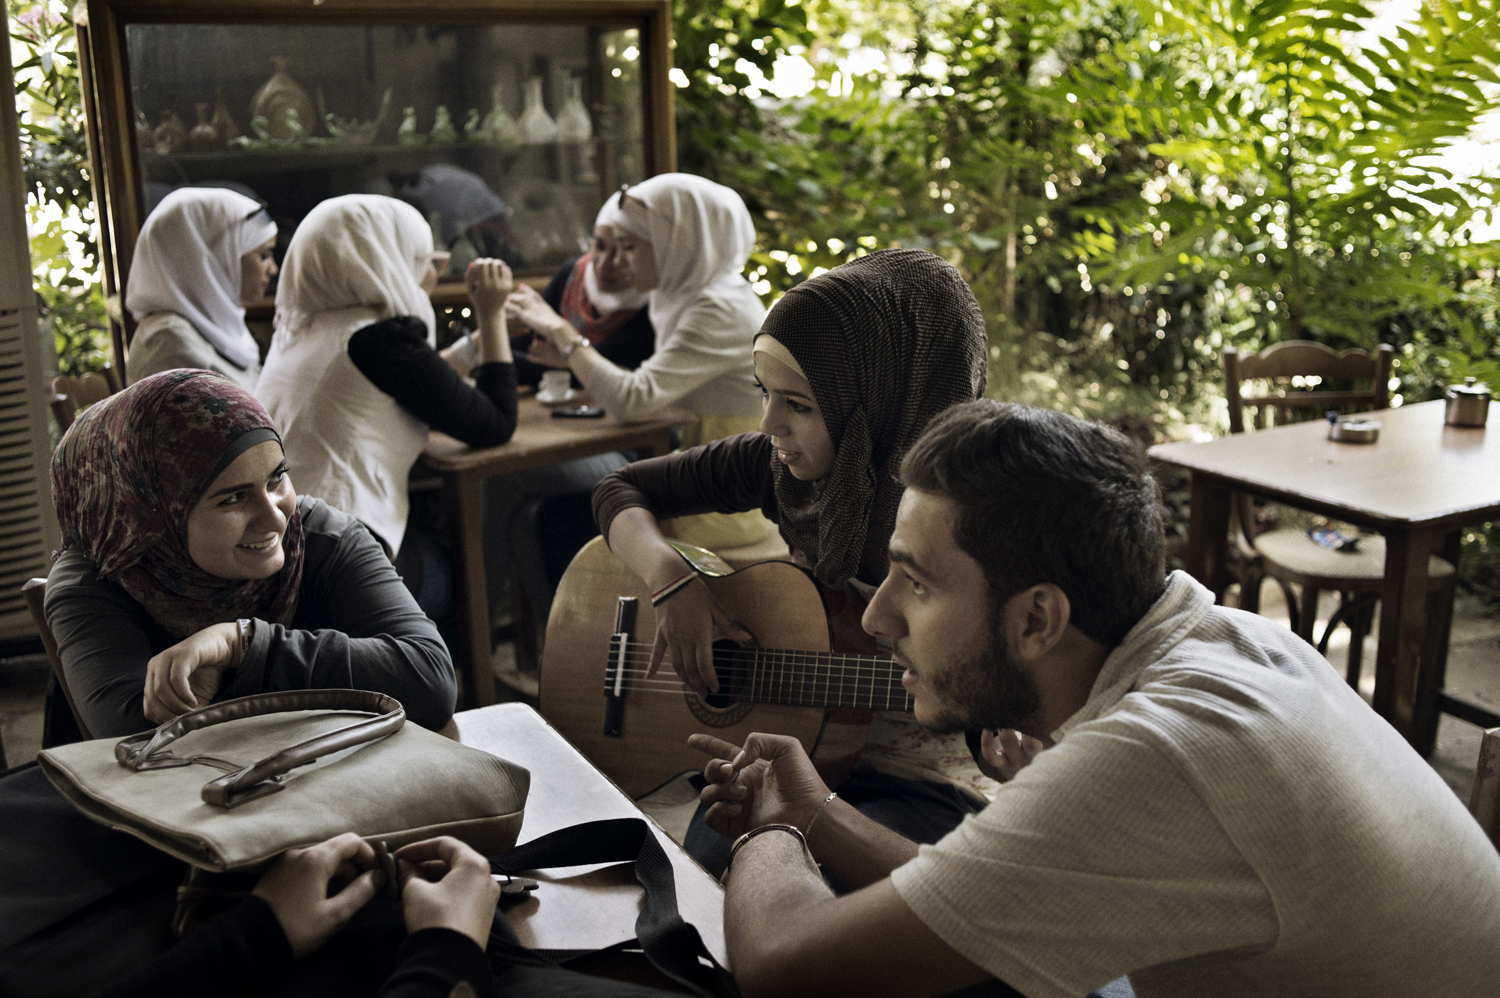 Young Damascenes gather at the café in the garden of the National Museum in Damascus. May 18, 2014.